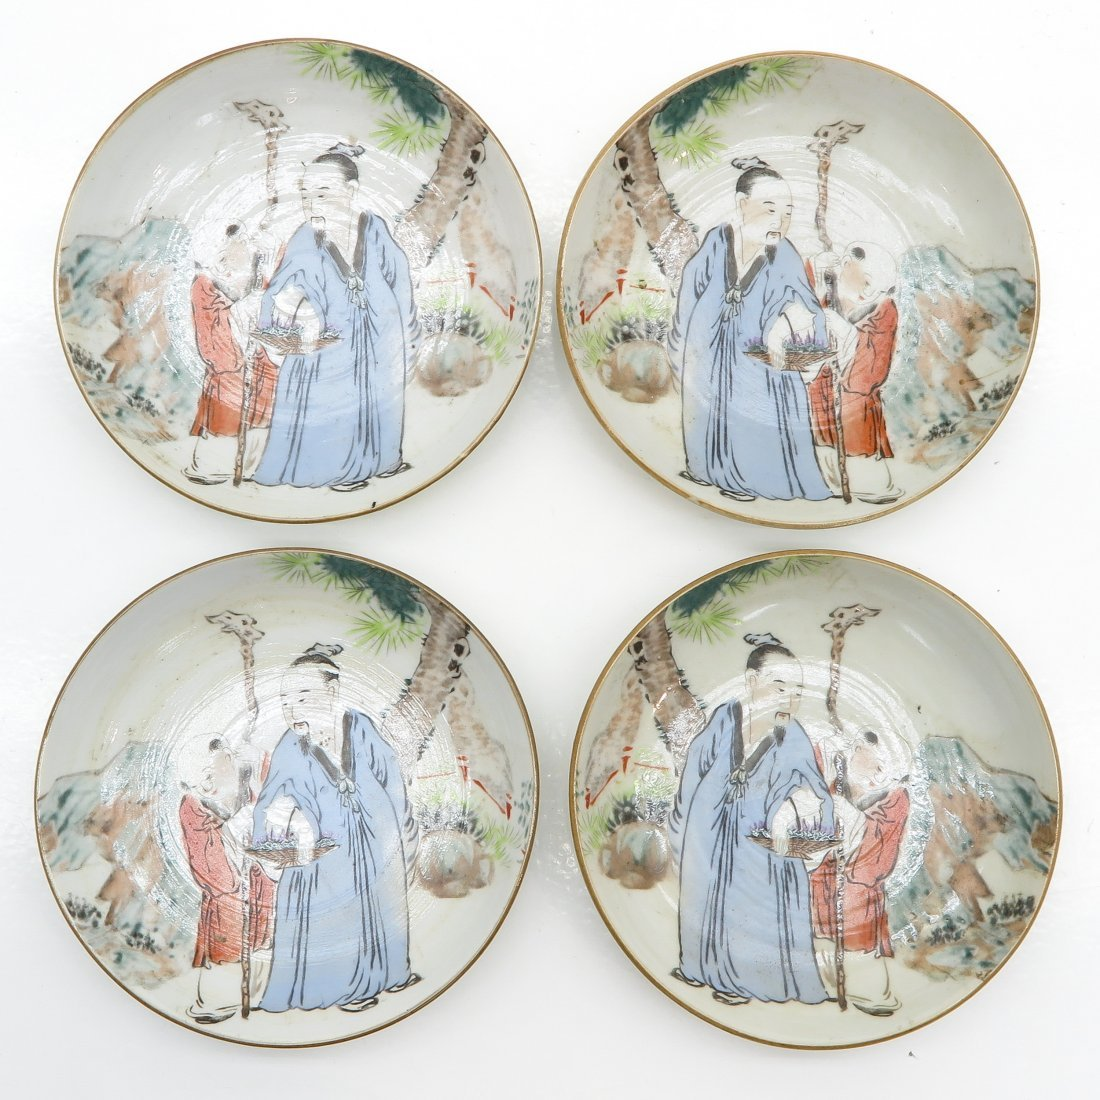 Lot of 4 Asiatic Porcelain Plates